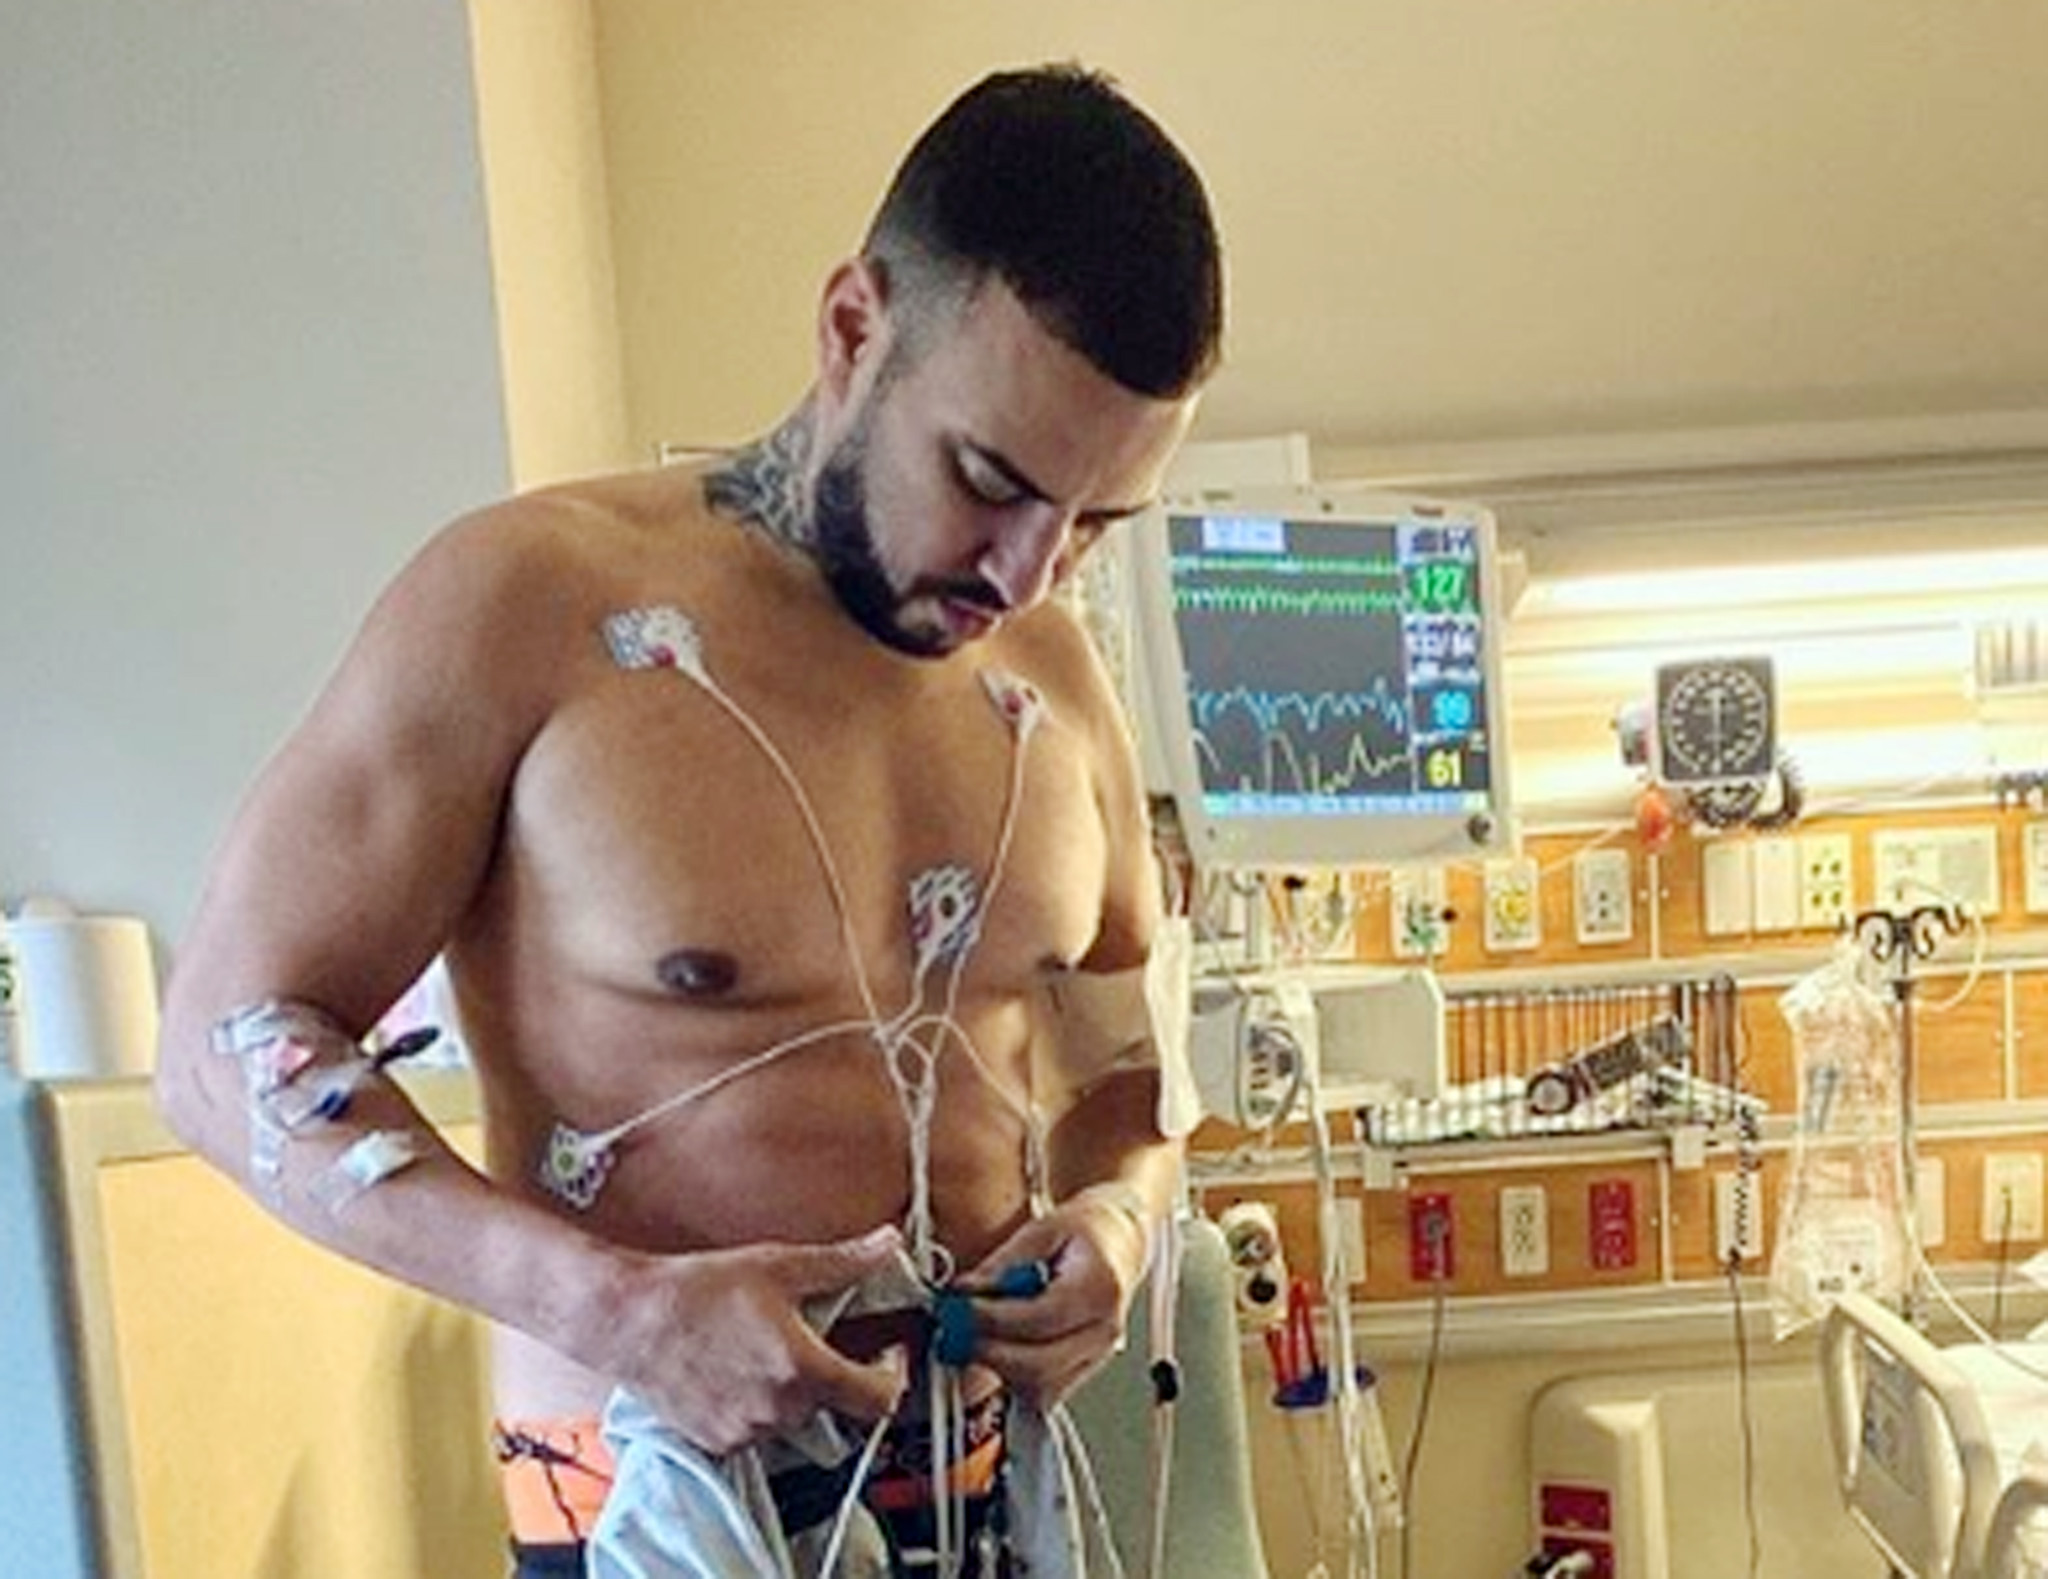 French Montana's out of hospital after two-week stay, but month of bed rest ordered by docs